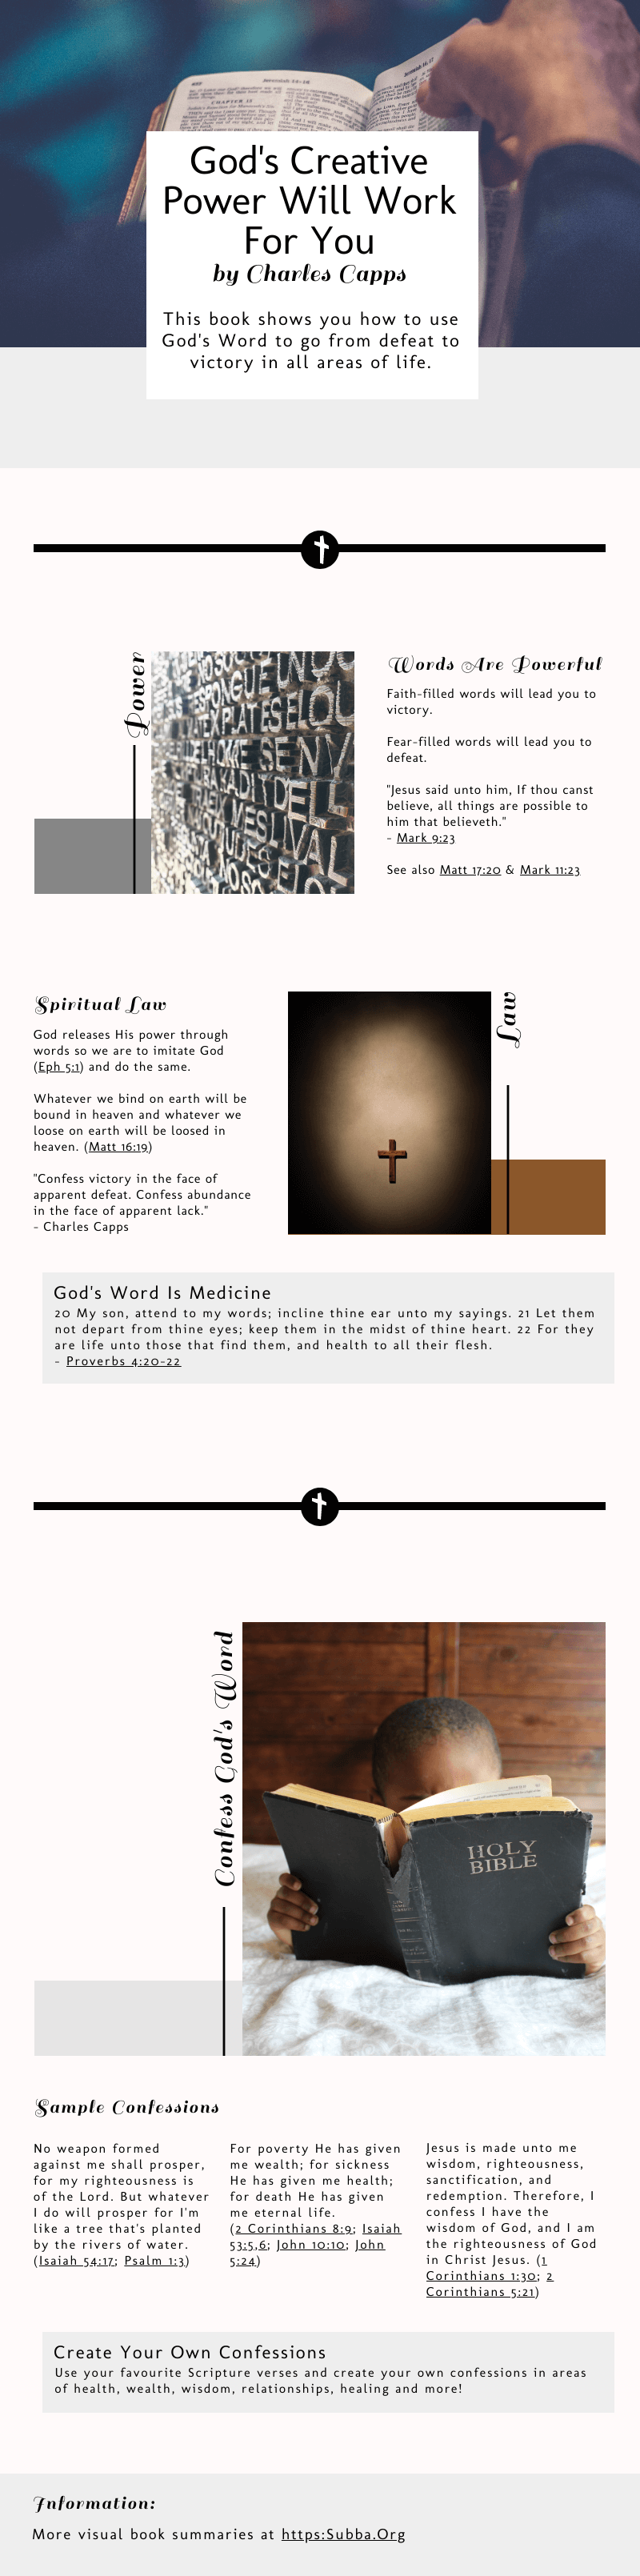 Visual Book Summary of God's Creative Power Will Work For You by Charles Capps